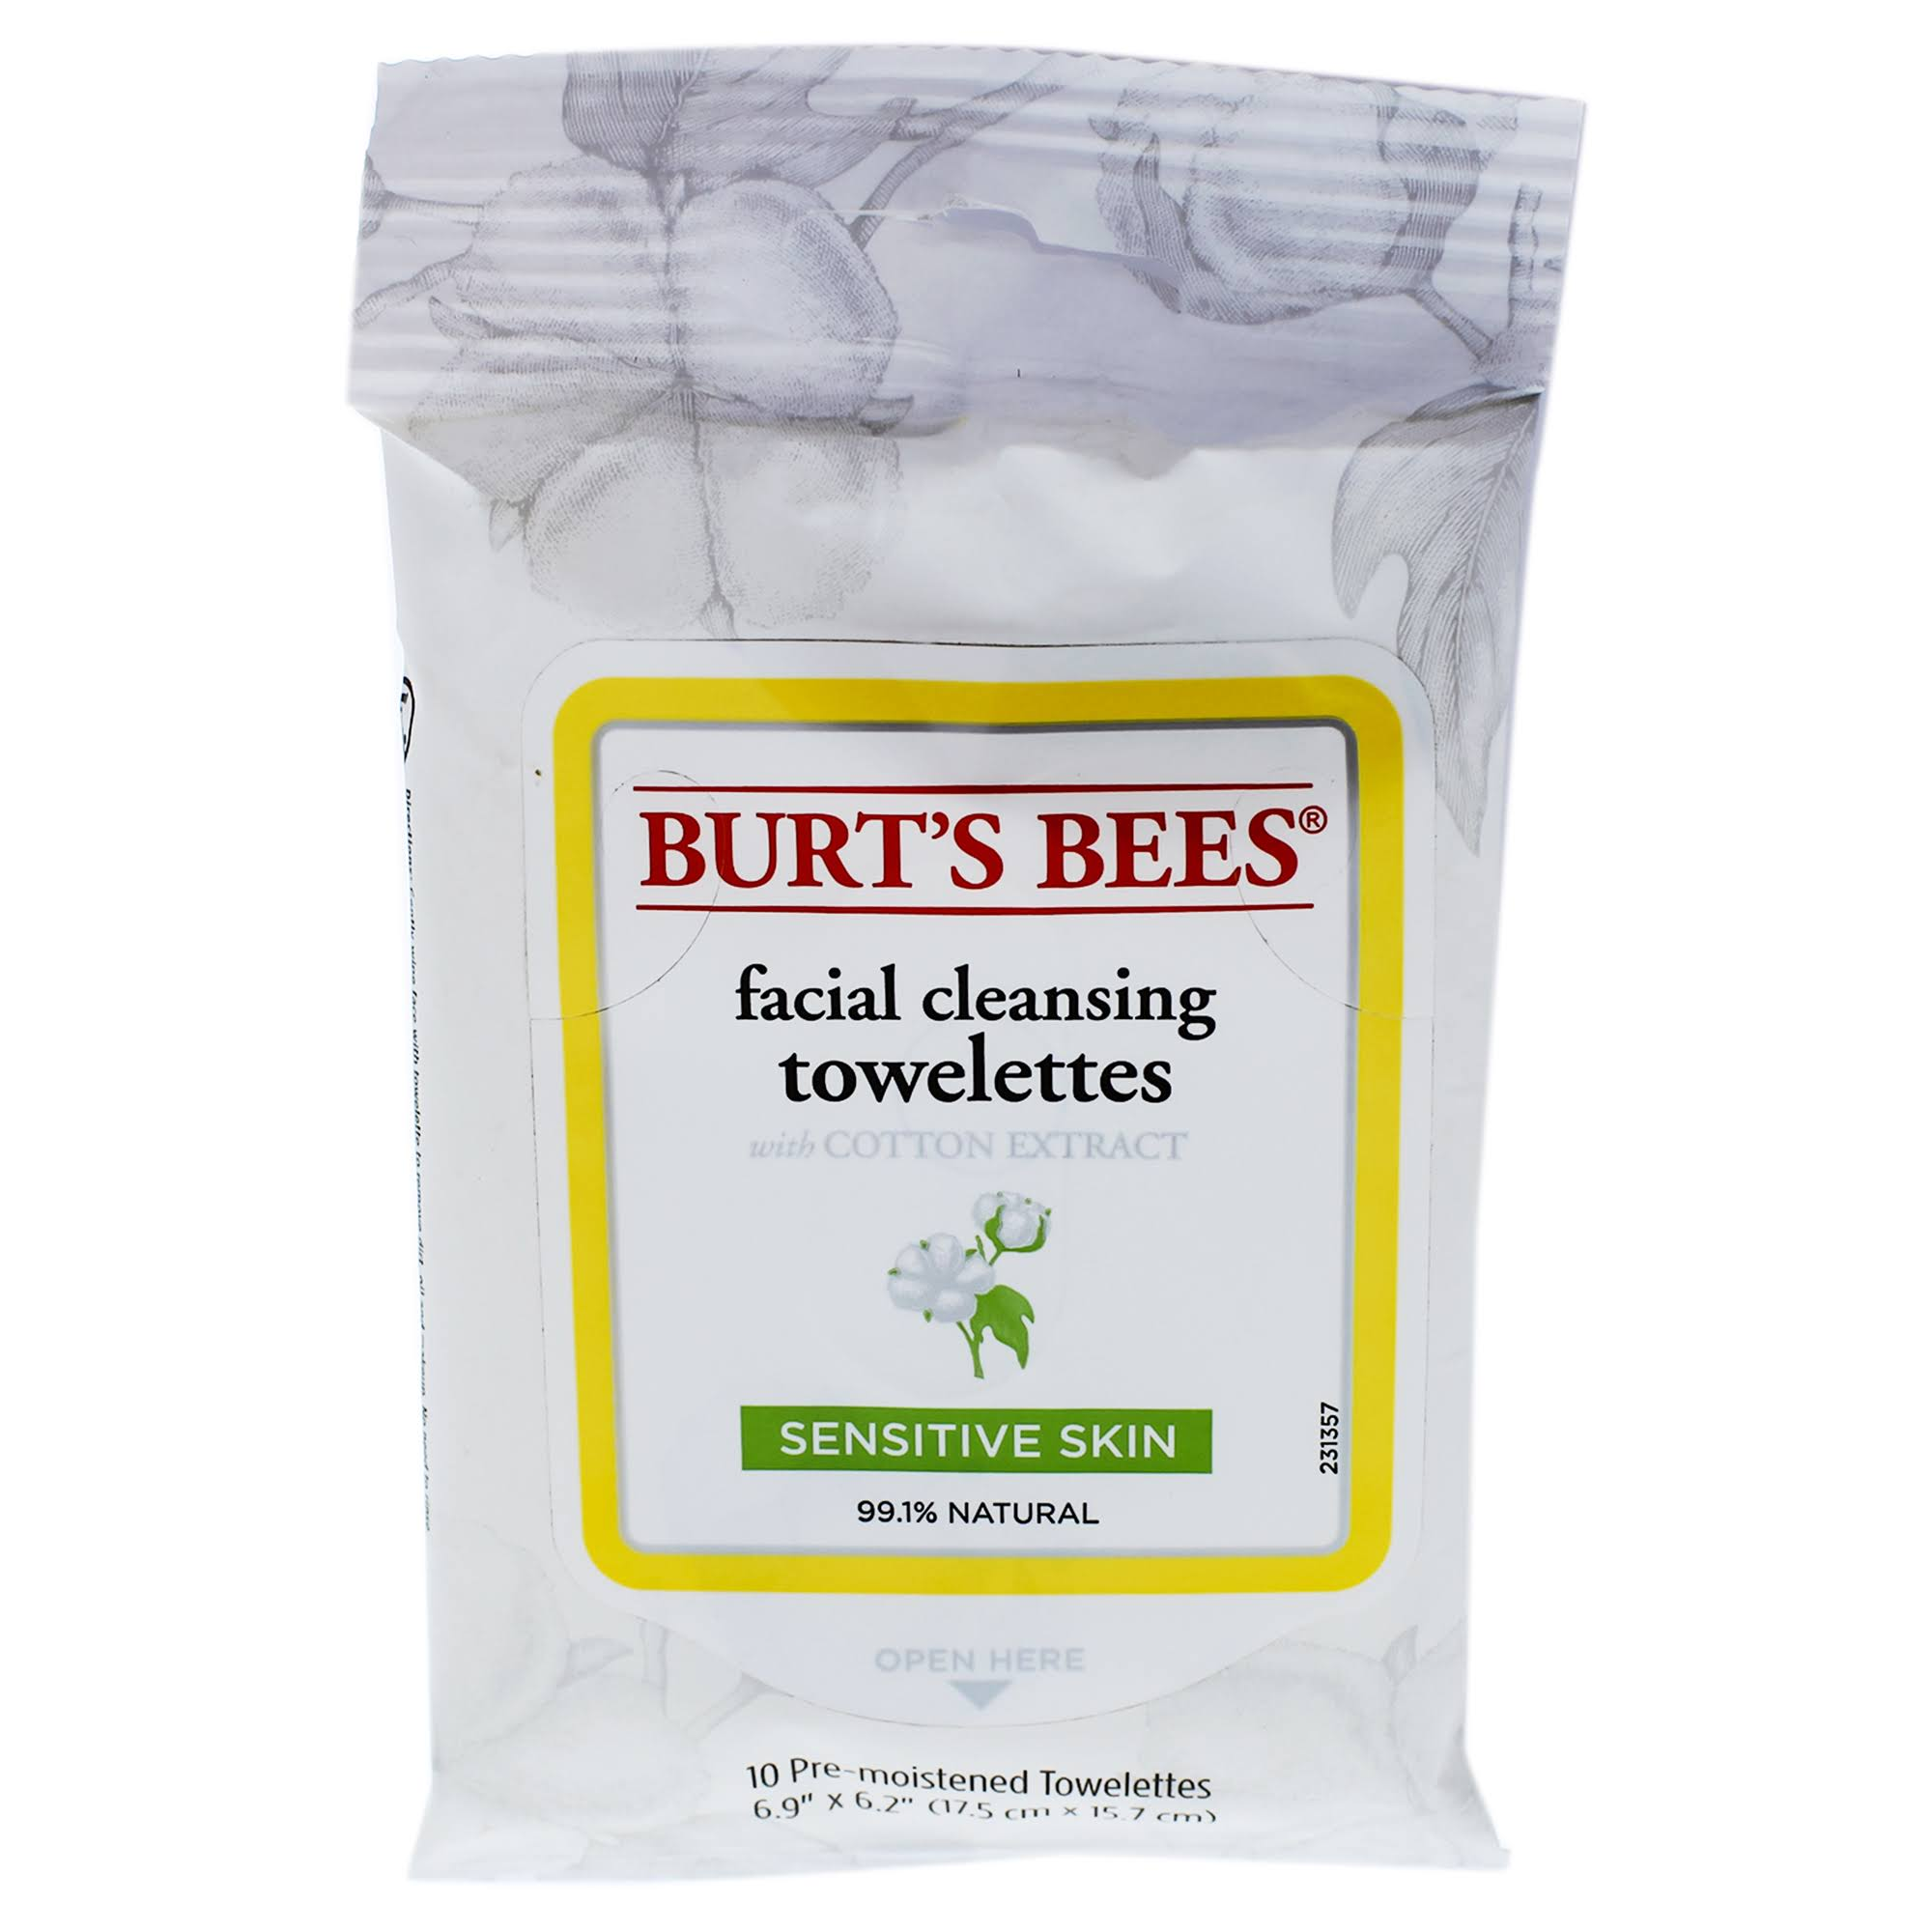 Burt's Bees Sensitive Facial Cleansing Towelettes - 30 Pre-Moistened Towelettes